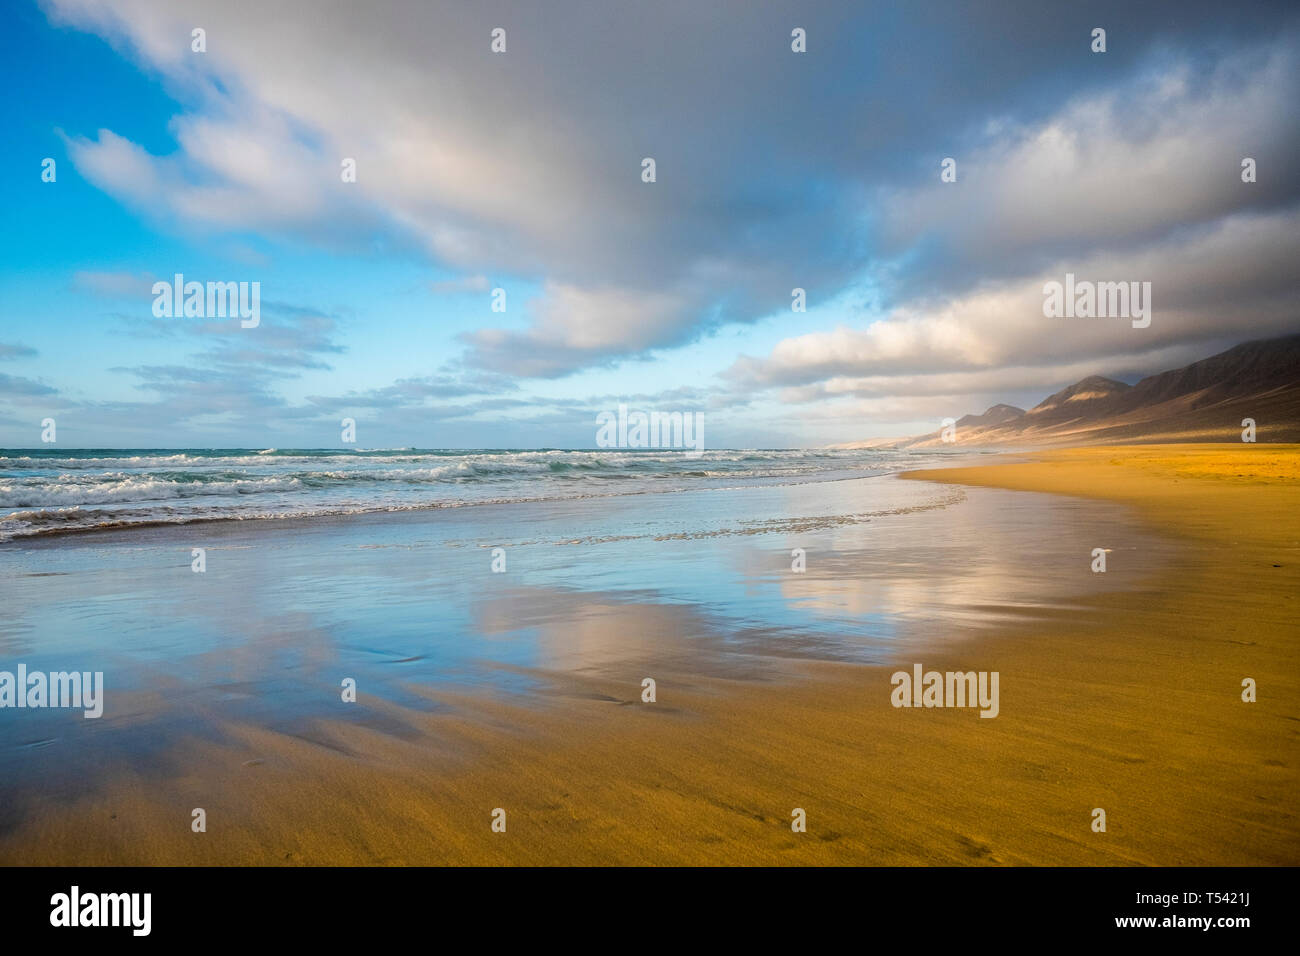 Lonely beach coloured and reflected with beautiful mountain background  with cloudy sky - summer tropical vacation concept in free sandy scenic place  Stock Photo